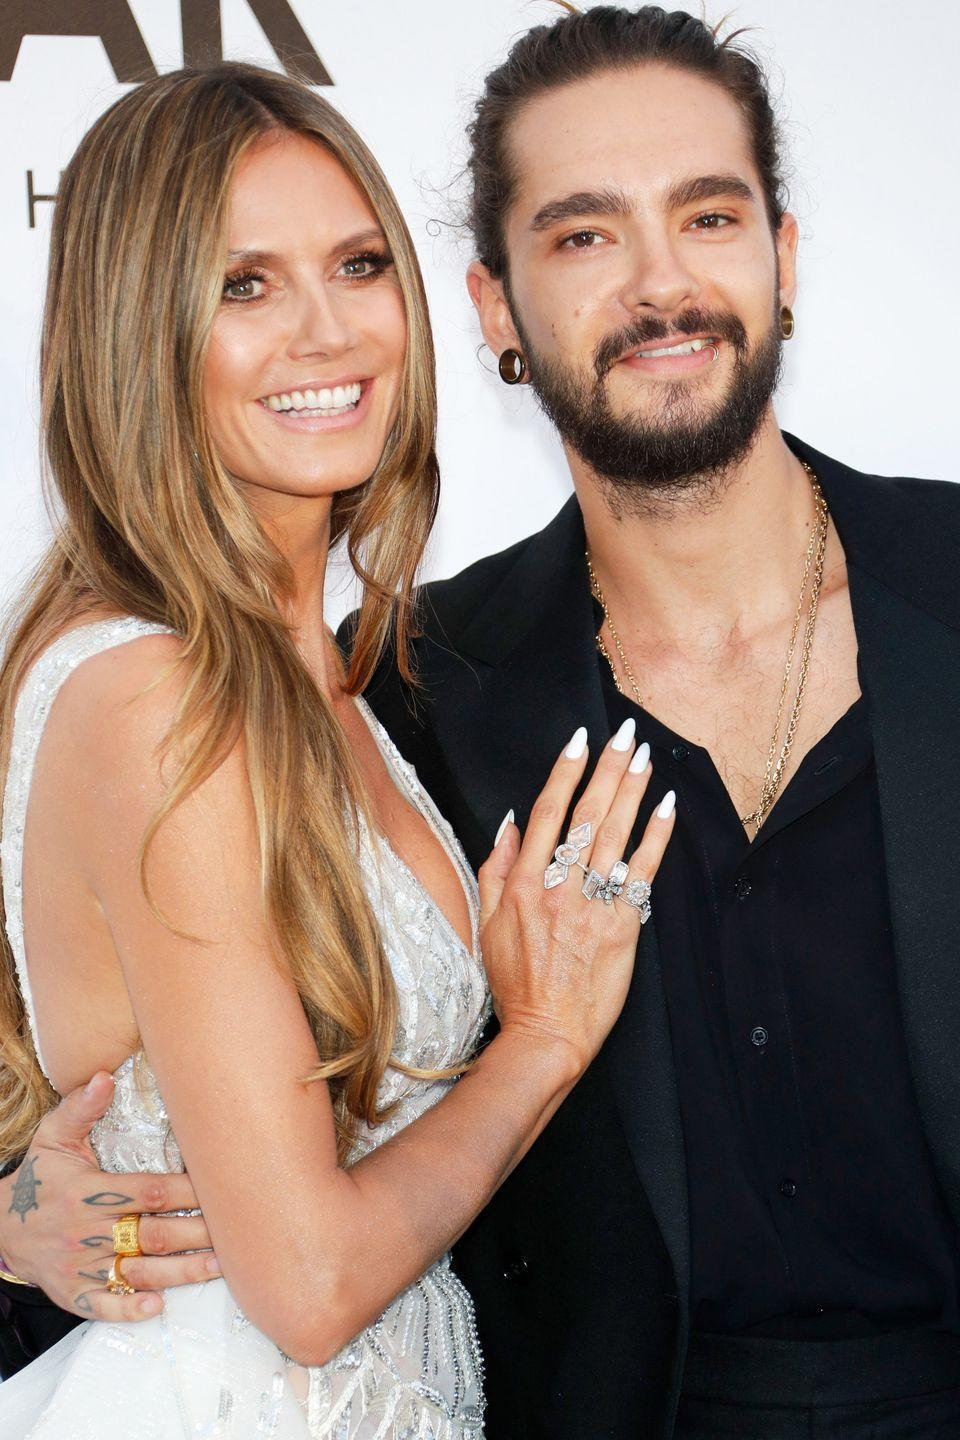 """<p><strong>Age gap: </strong>17 years</p><p>Heidi might have revealed her best anti-aging secret when she explained her thoughts on her and husband Tom Kaulitz's 17-year age gap. """"You have to just live a happy life without worrying too much about what people think because worrying is only going to give you more wrinkles,"""" Heidi told <a href=""""https://www.instyle.com/news/heidi-klum-downside-dating-someone-17-years-younger"""" rel=""""nofollow noopener"""" target=""""_blank"""" data-ylk=""""slk:InStyle"""" class=""""link rapid-noclick-resp""""><em>InStyle</em></a>. The pair started dating in 2018, got engaged later that year, and made it official this summer.</p>"""